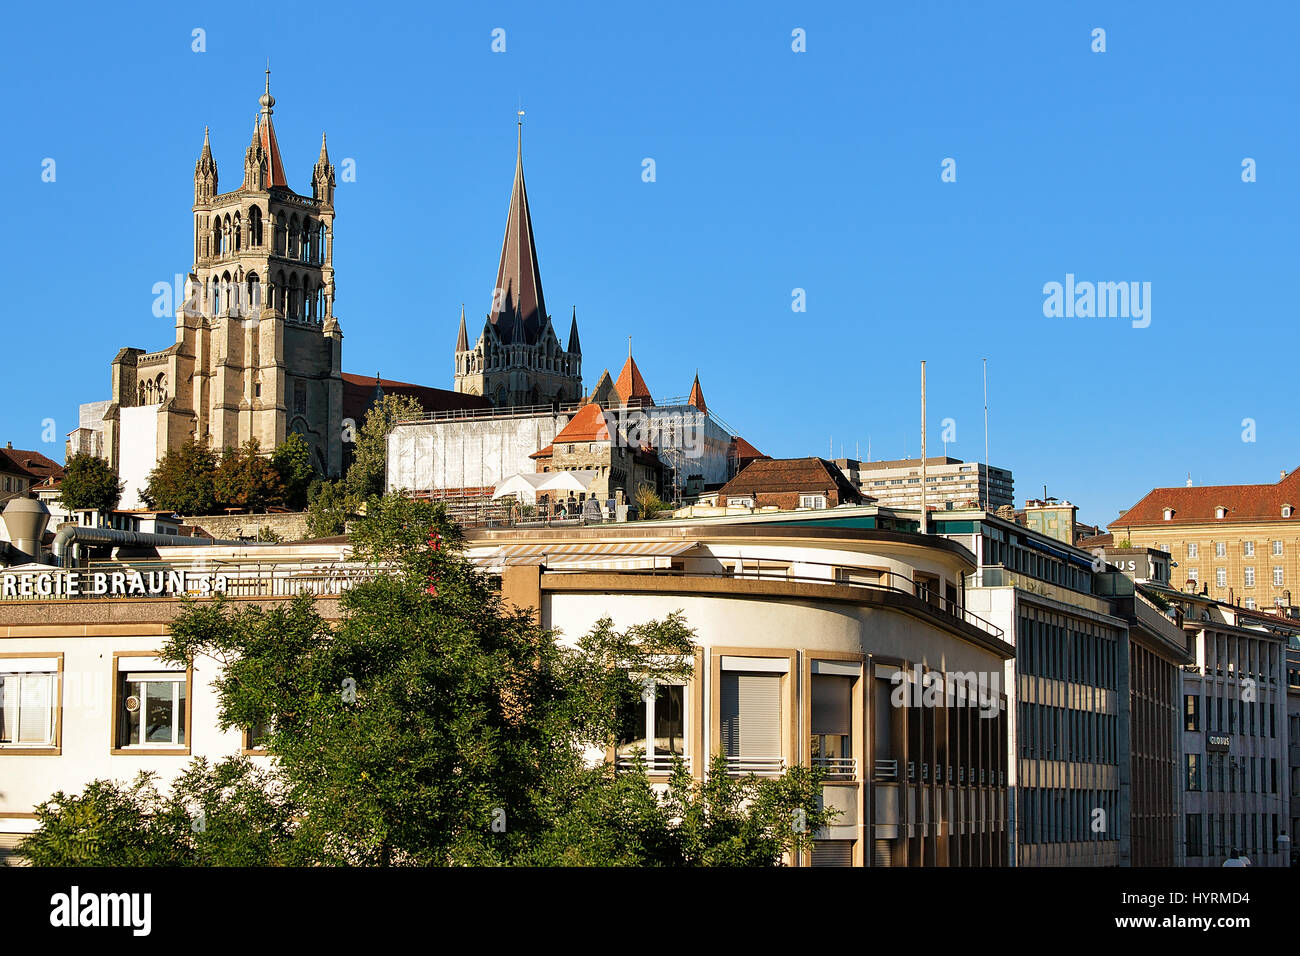 Lausanne, Switzerland - August 26, 2016: Cathedral of Notre Dame, Lausanne, in Switzerland. Seen from Le Flon district - Stock Image